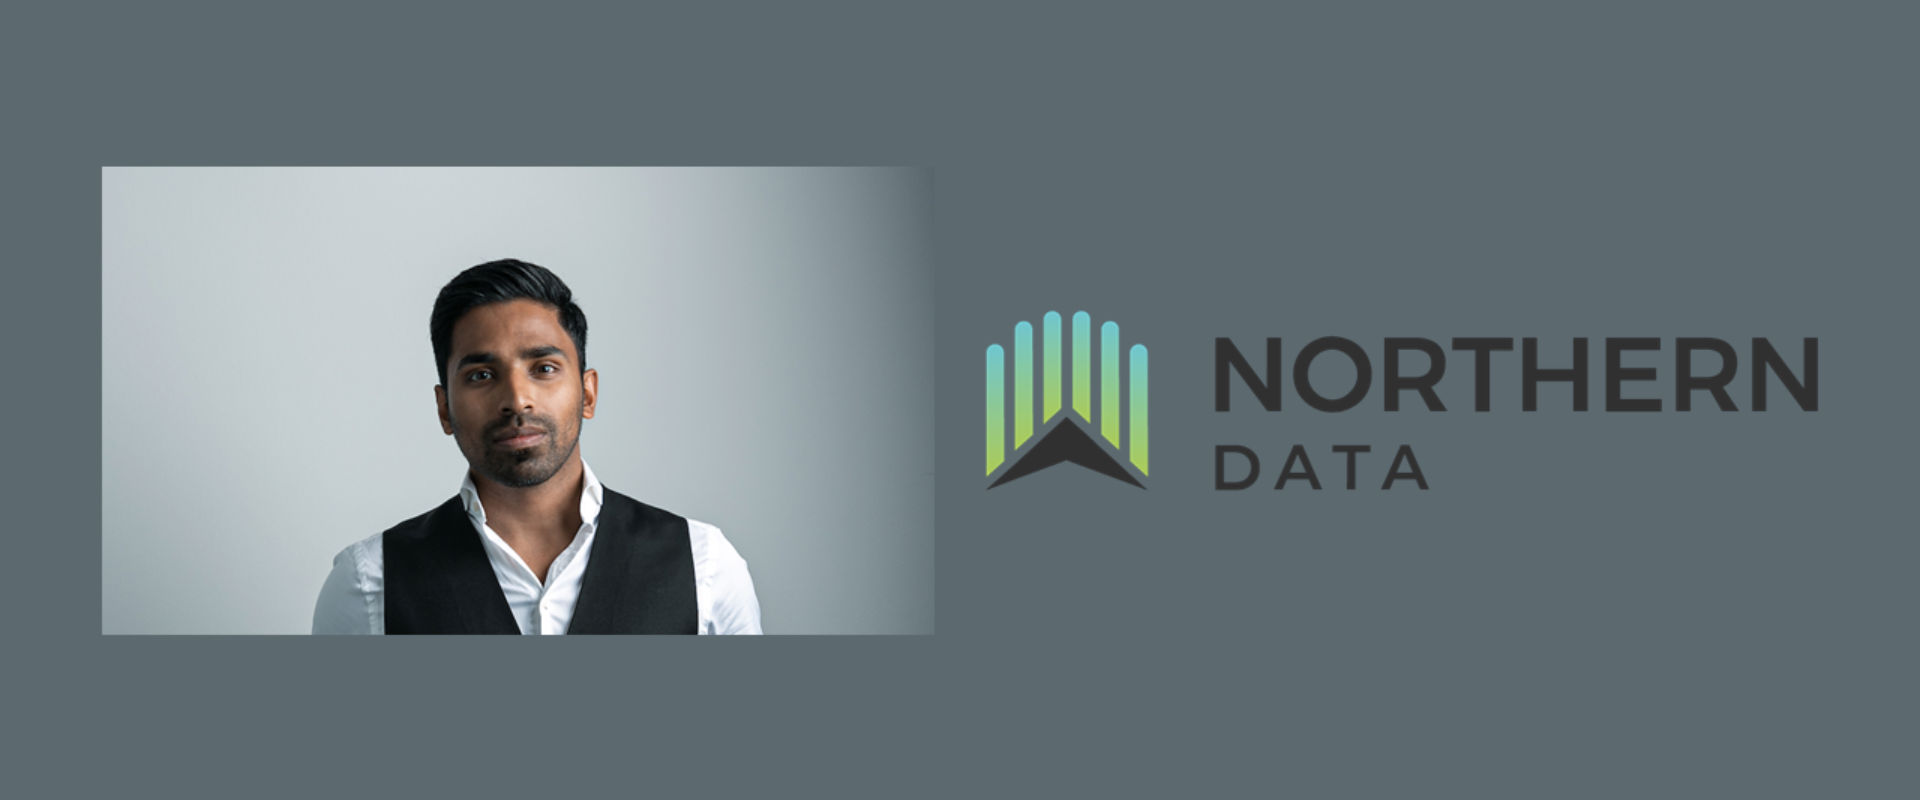 northern data ceo interview